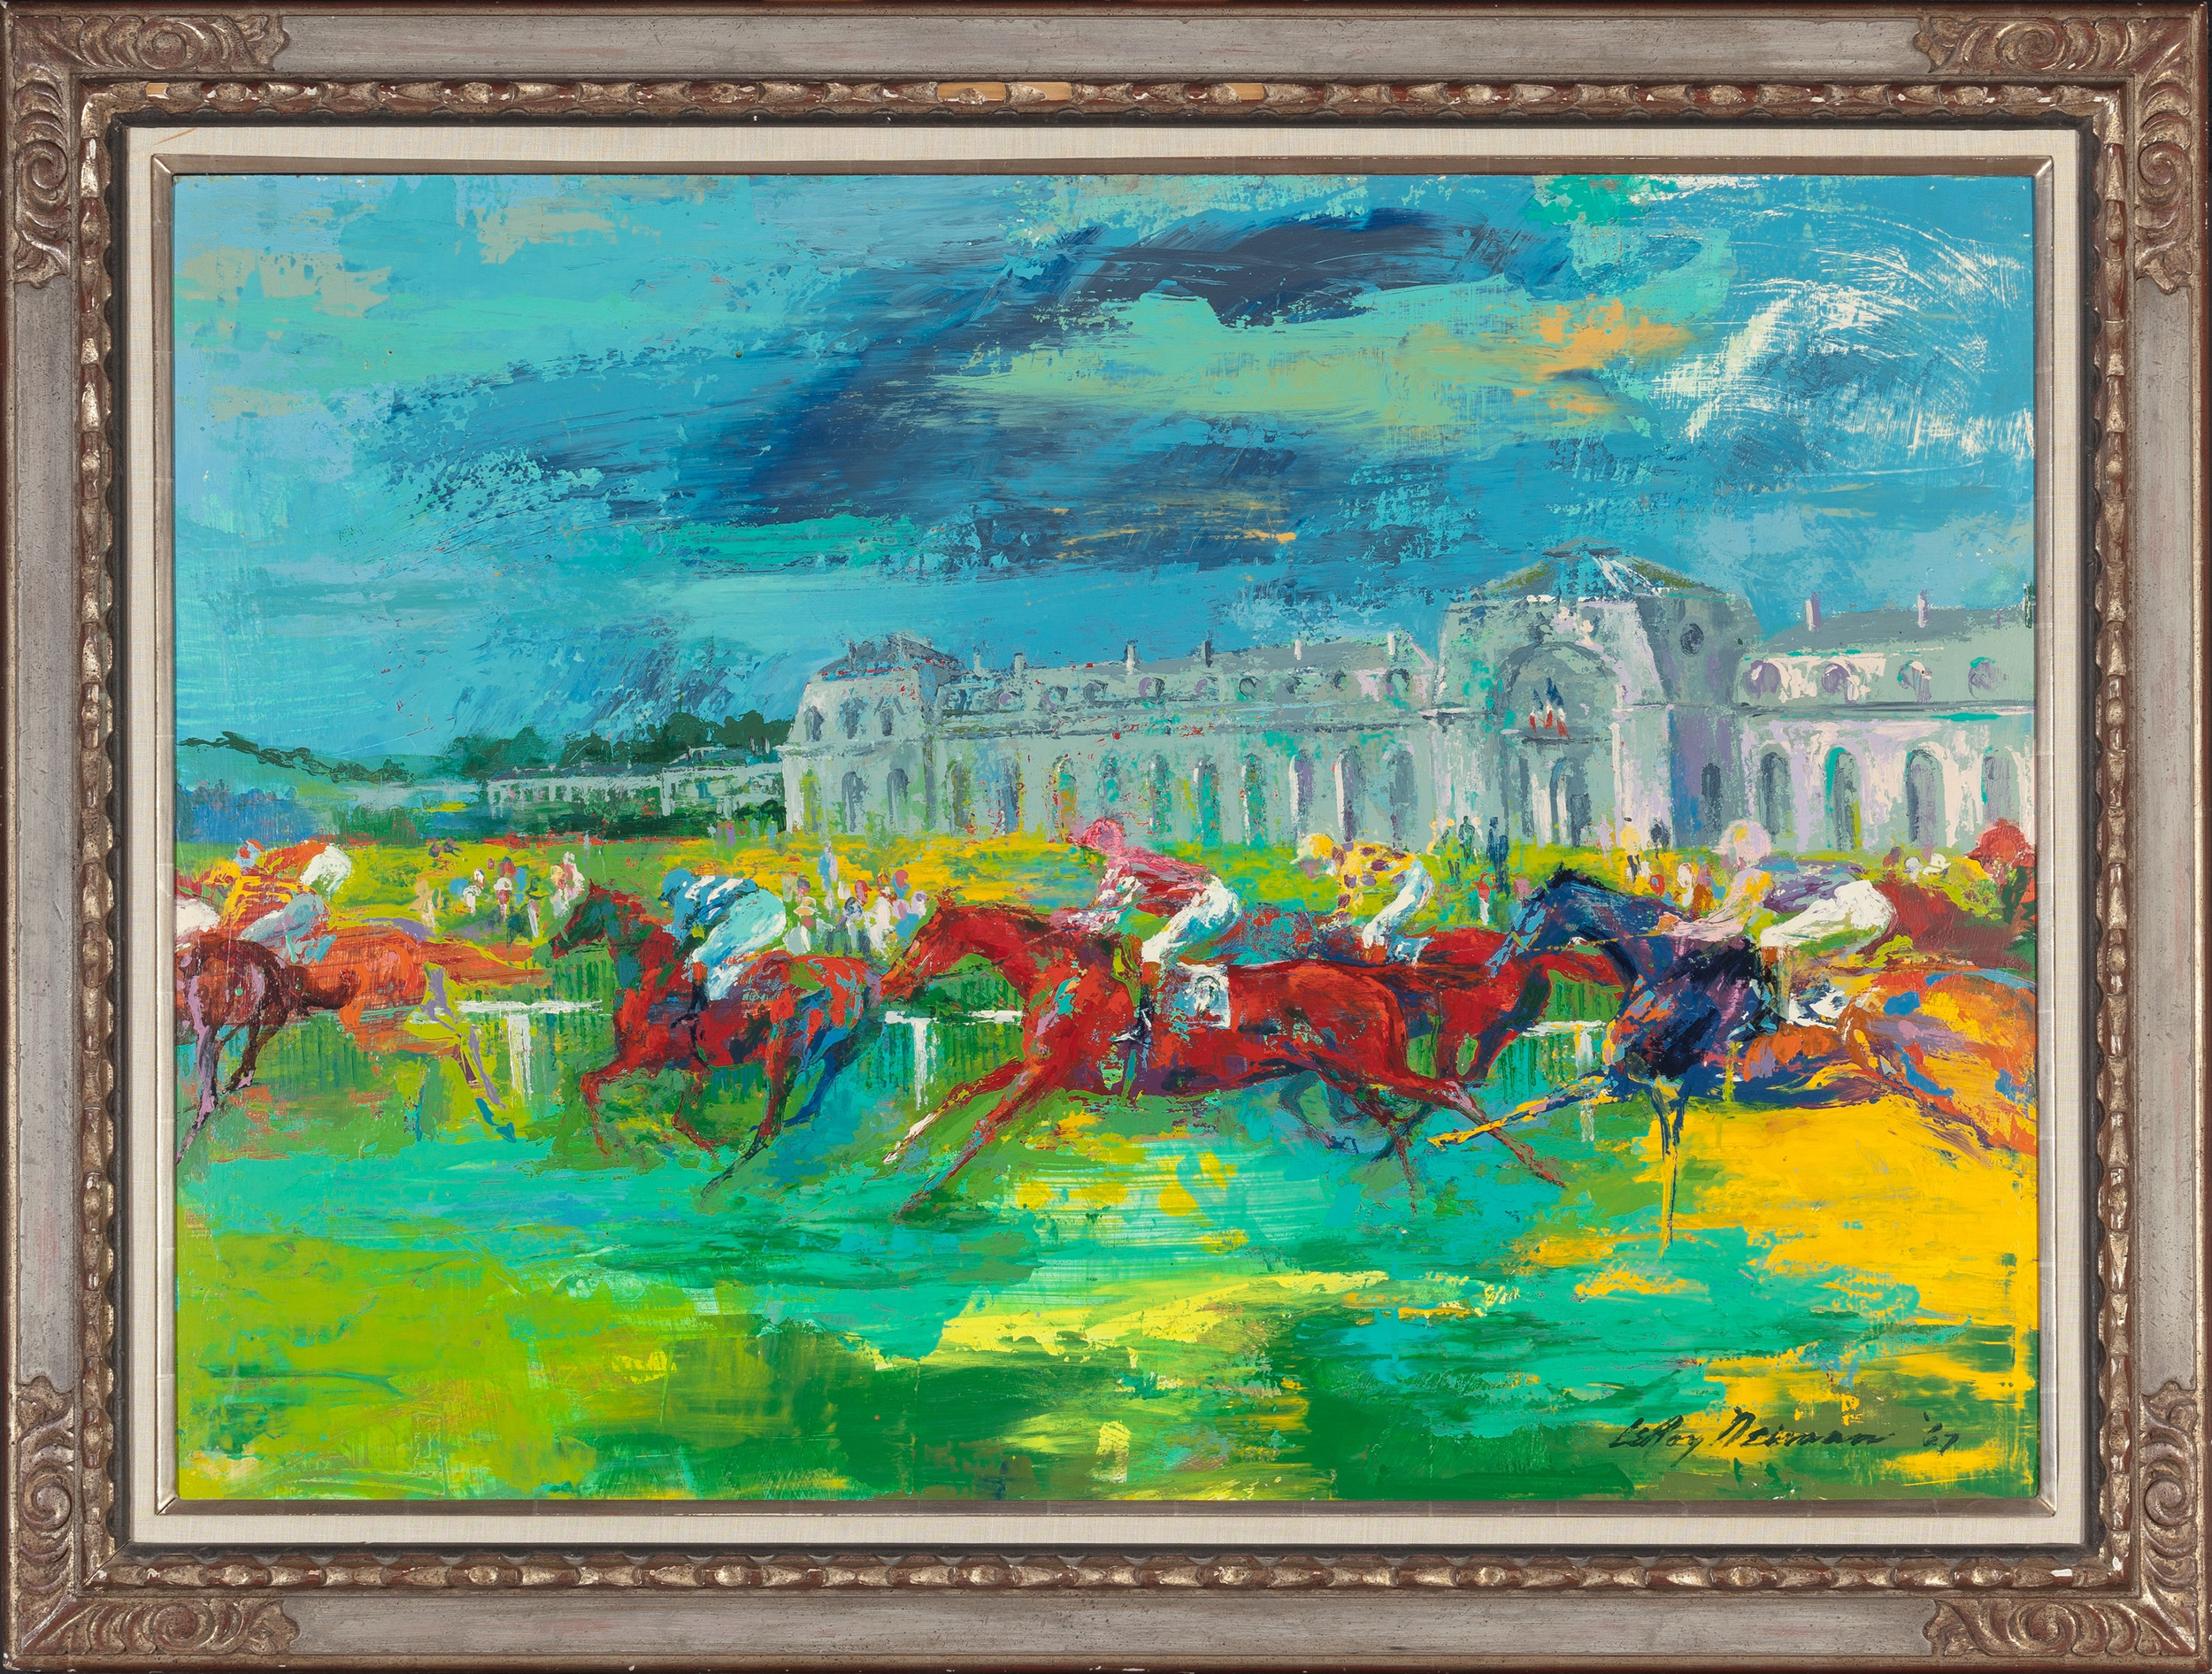 Leroy Neiman, perhaps the most influential sports artist of the 1960s and 1970s, is represented in the auction by his masterful 1967 acrylic on Masonite titled 'Racing,' which is expected to bring more than $50,000. Heritage Auctions images.